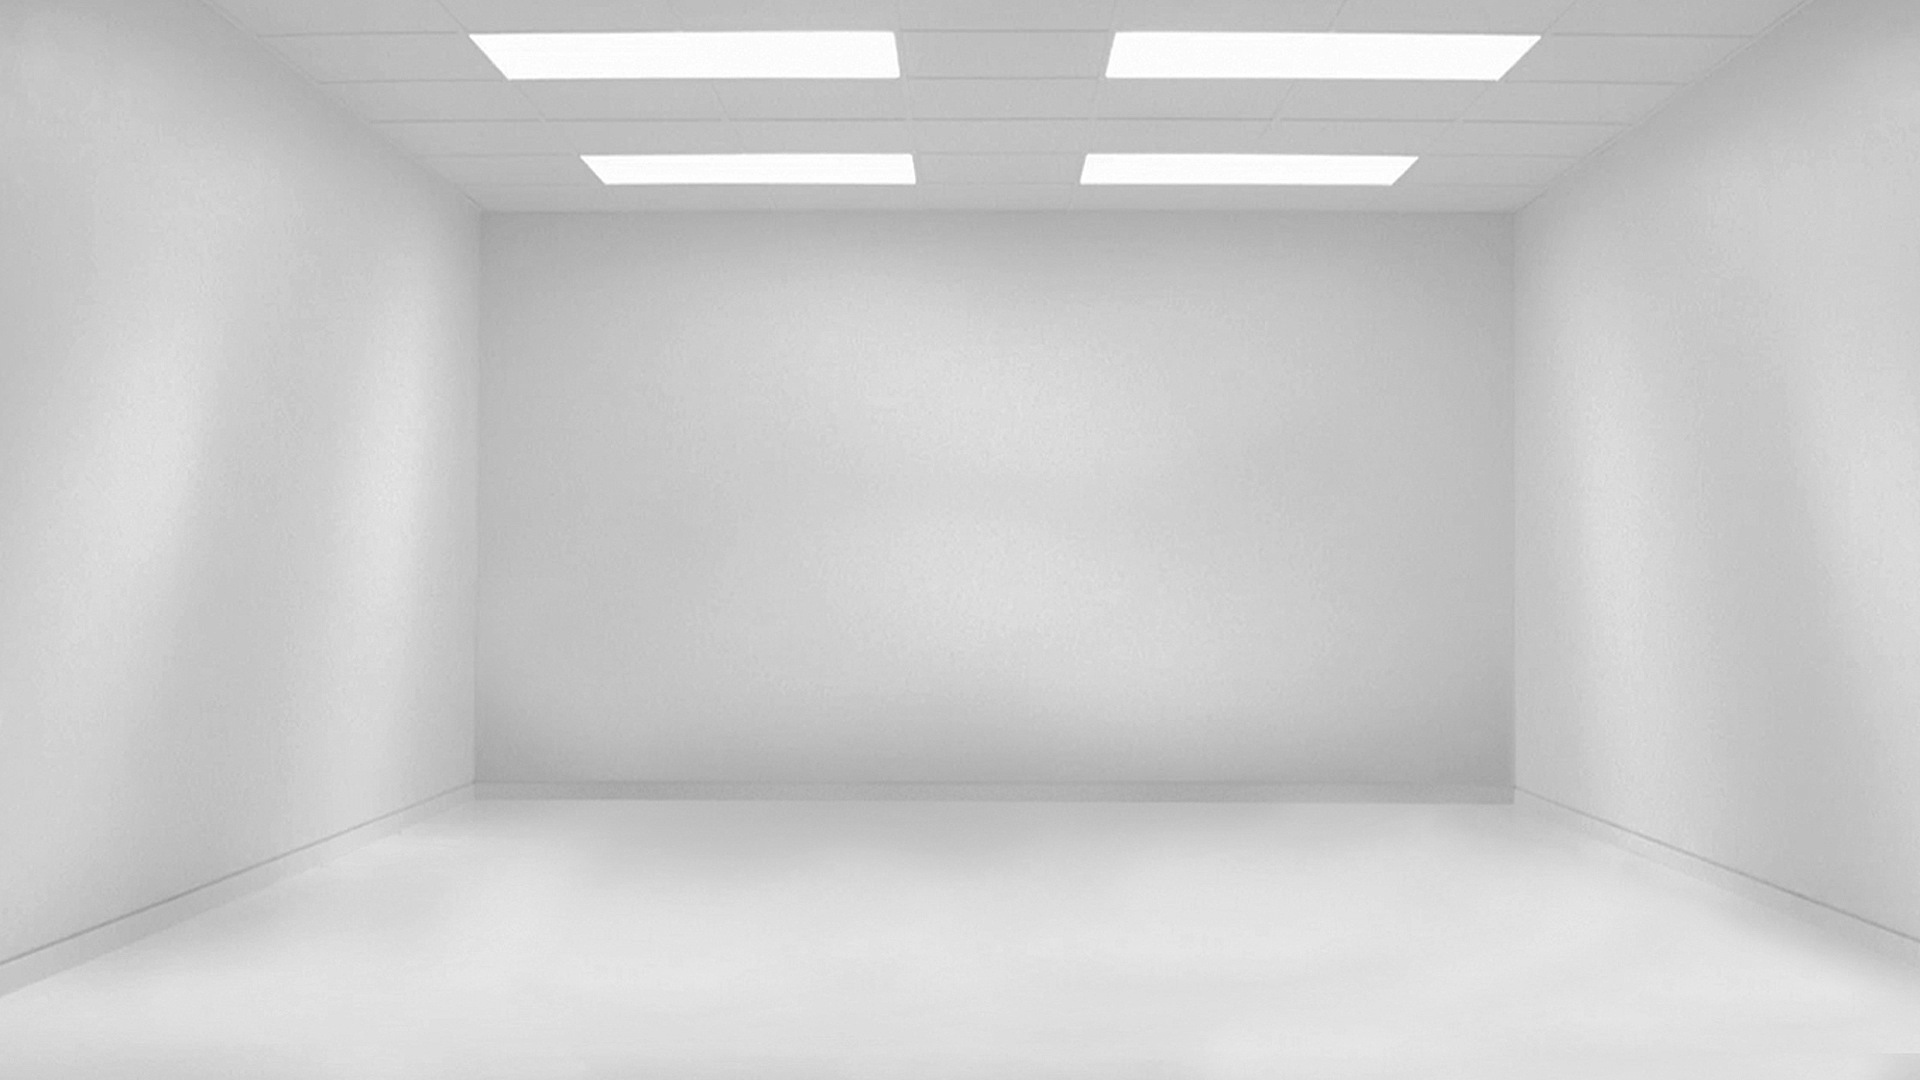 white white room wallpaper background 1920x1080